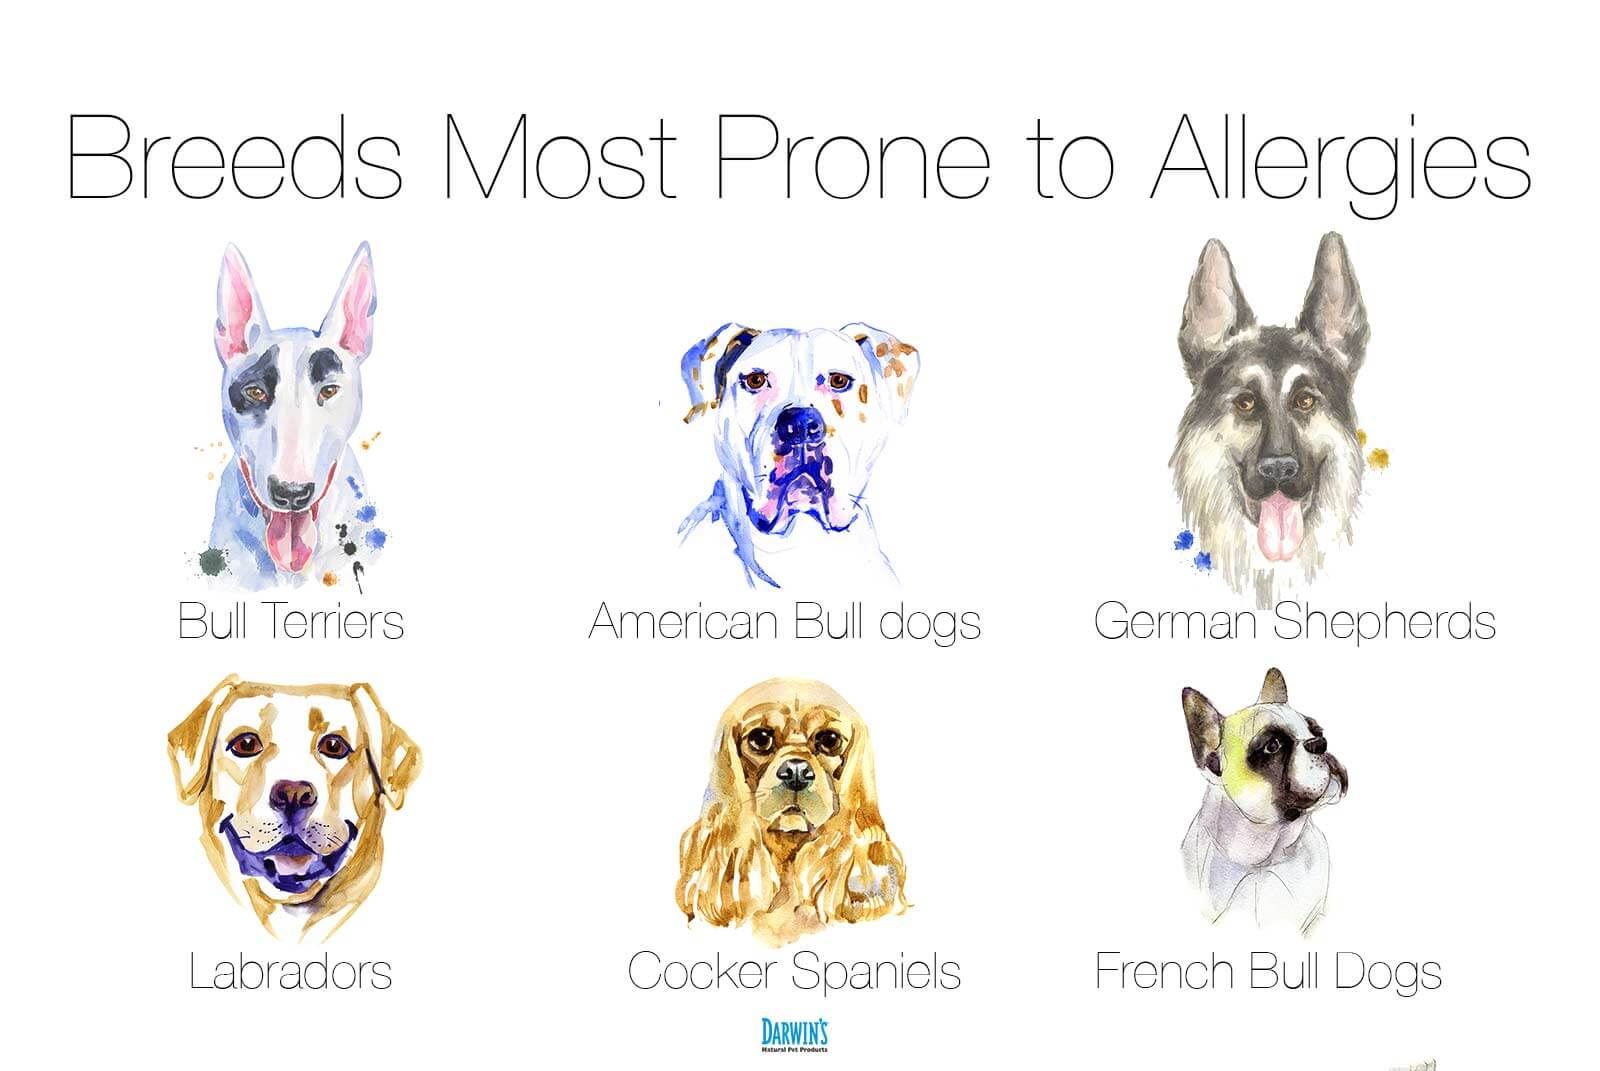 Dogs prone to Allergies